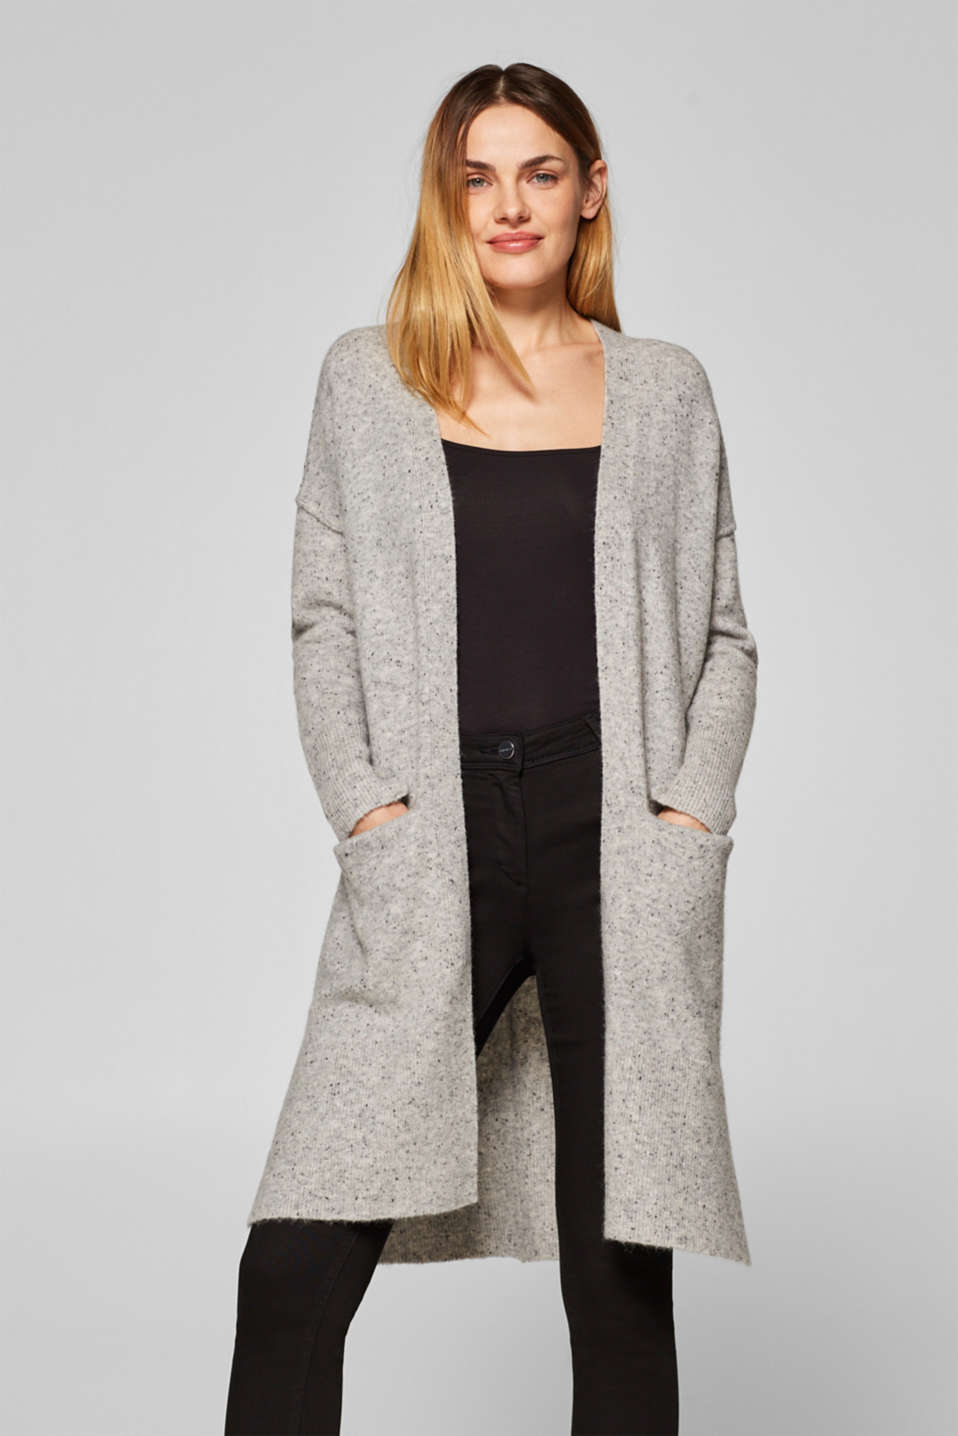 Esprit - Made of blended wool: long melange cardigan with added stretch